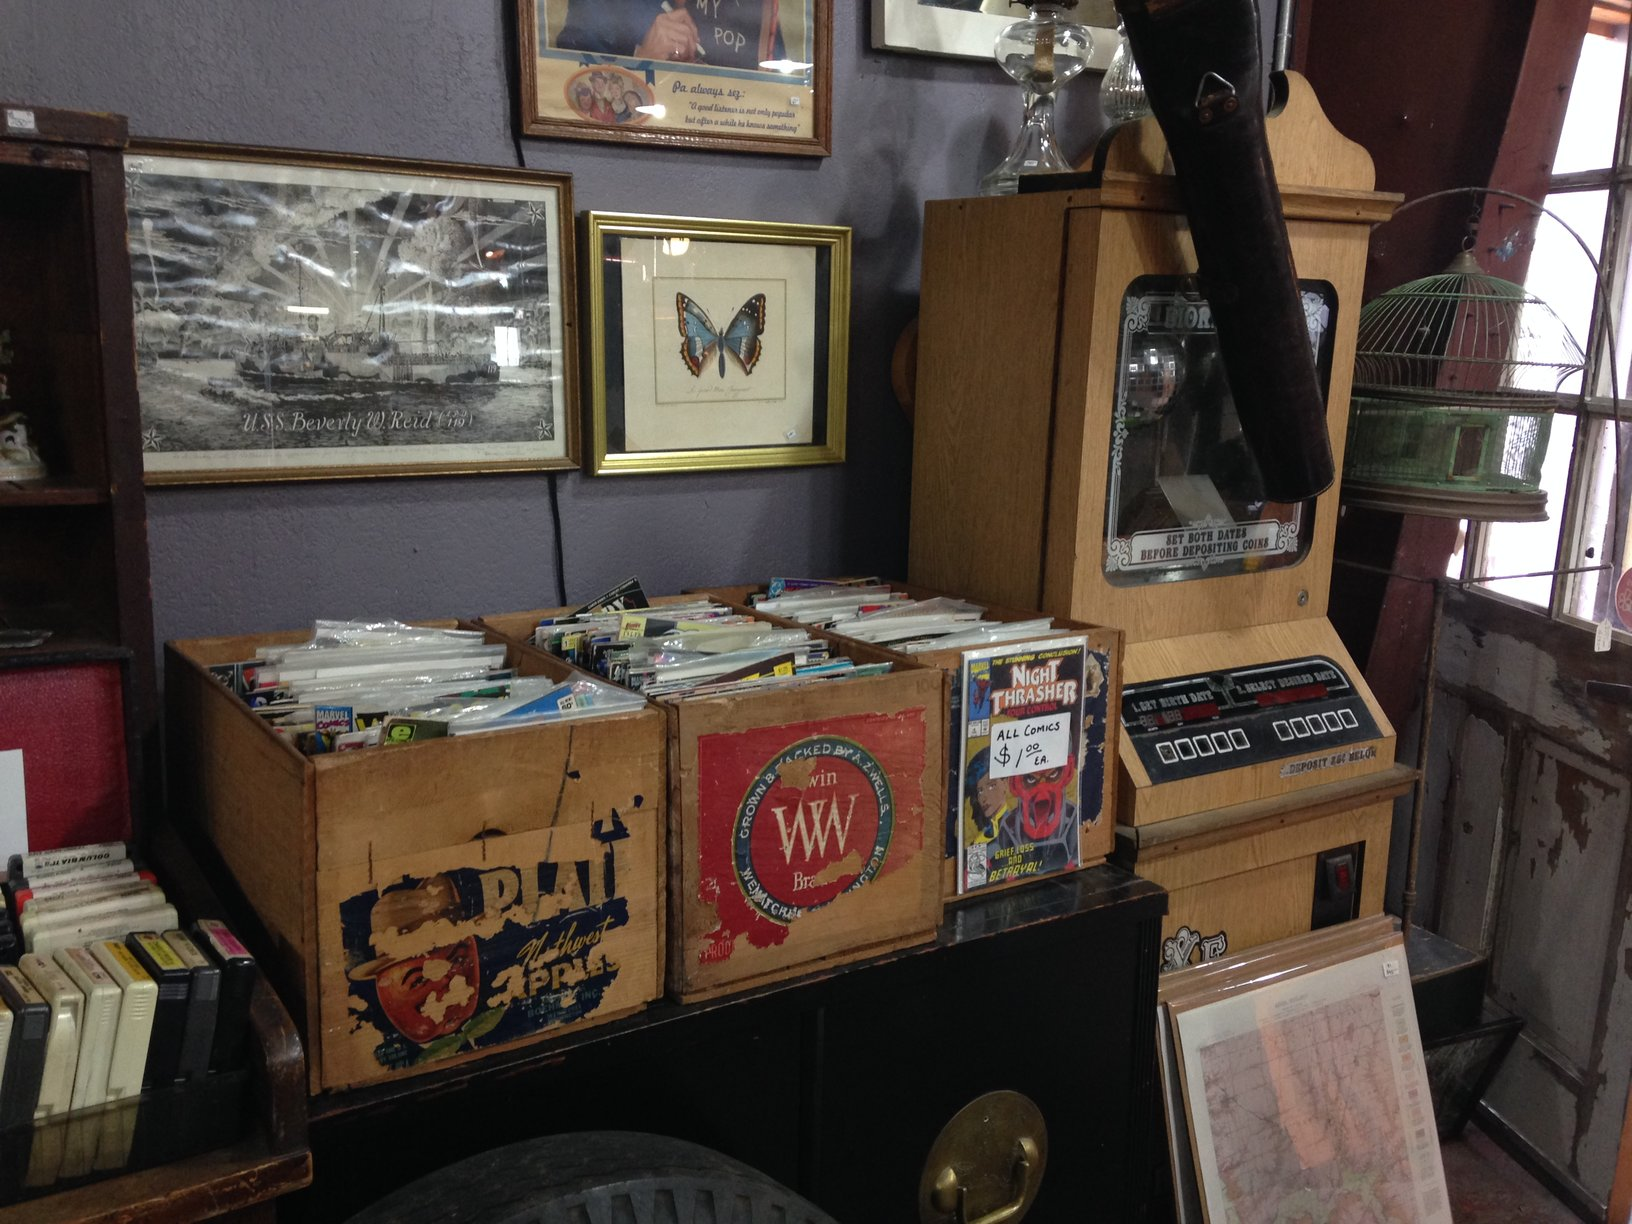 Records, old pictures, and DVDs are sold at M'Antiques, an antique store in Bishops Arts District. Bishops Arts District is home to many antique and vintage stores.